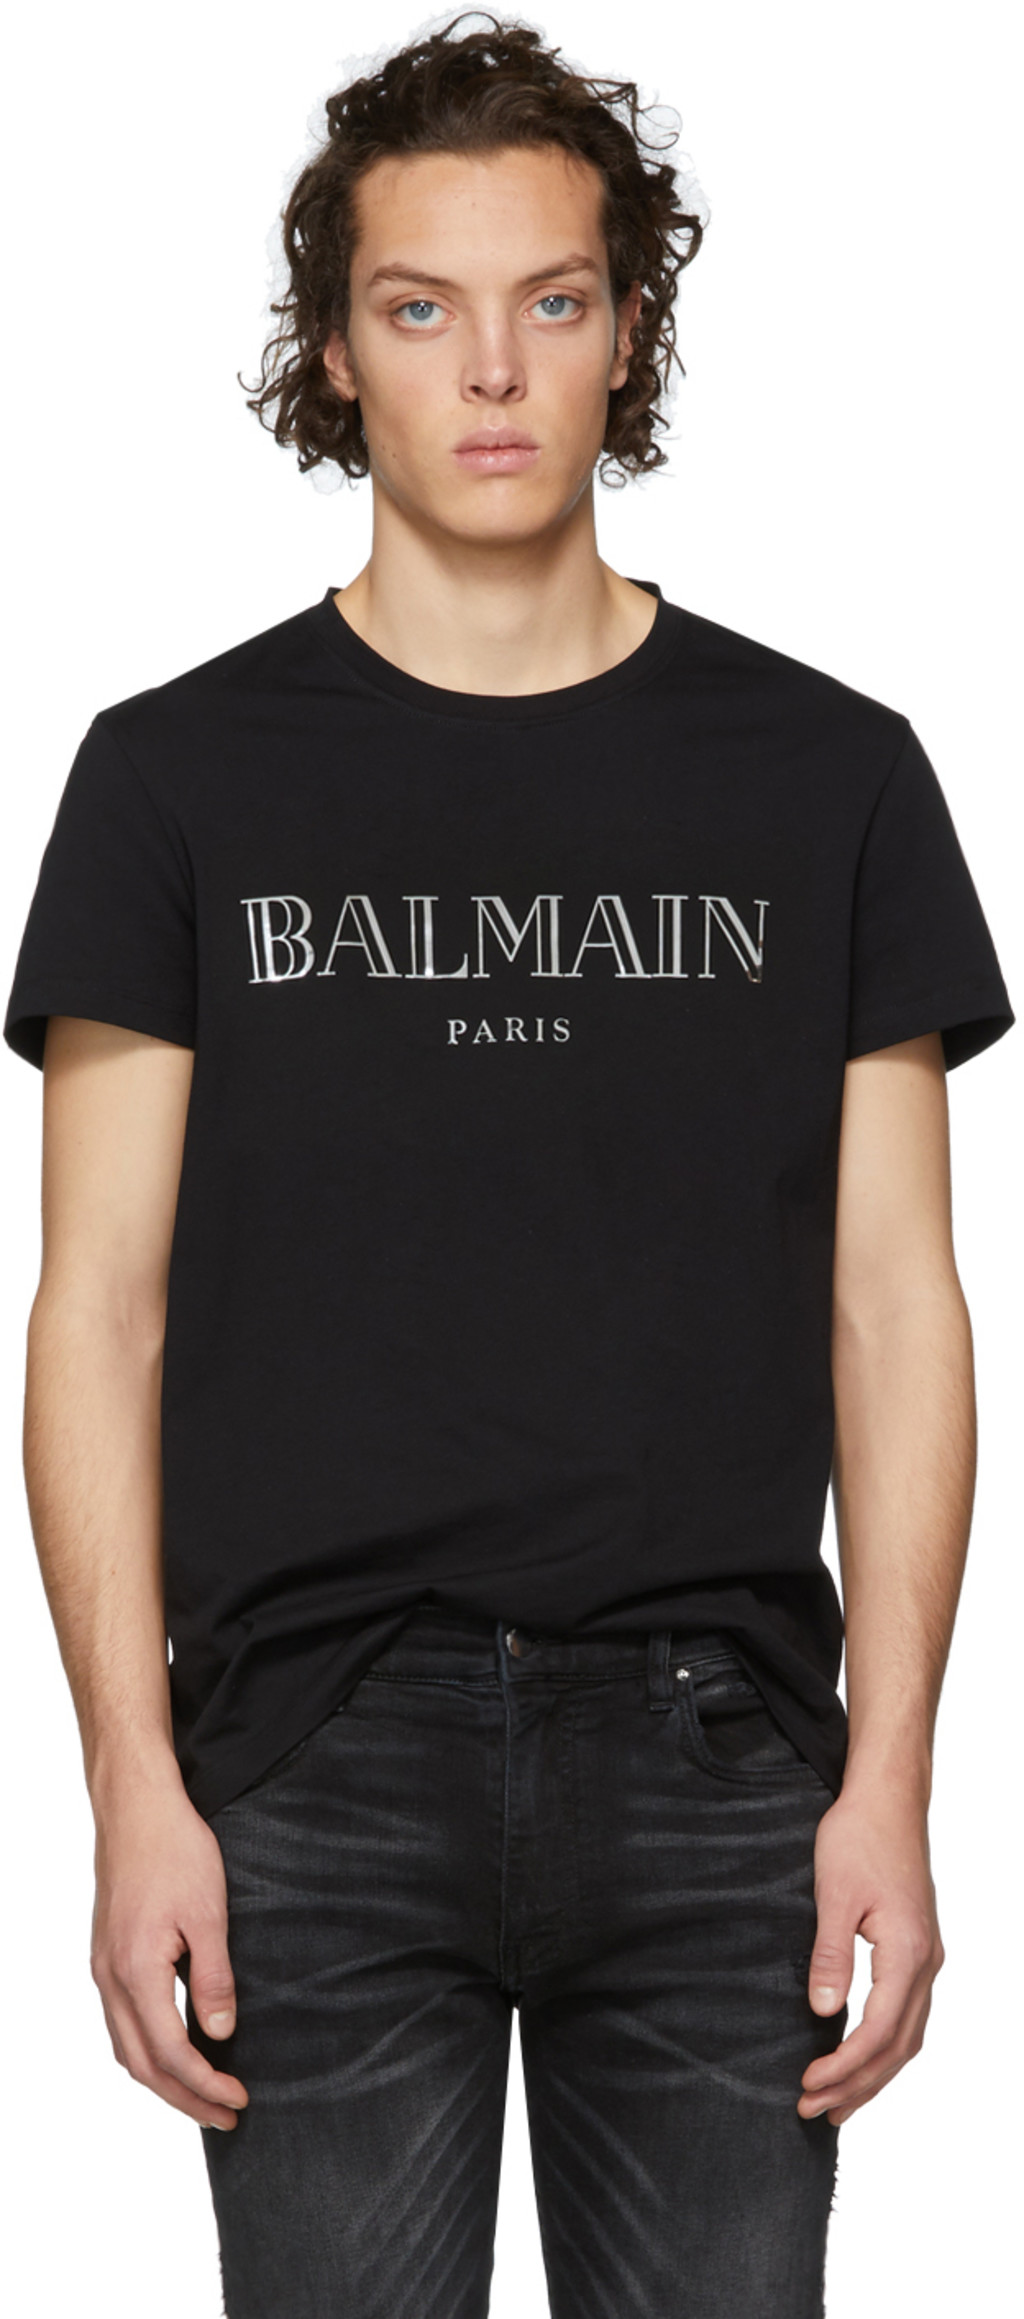 04a3bc36 Balmain t-shirts for Men | SSENSE UK